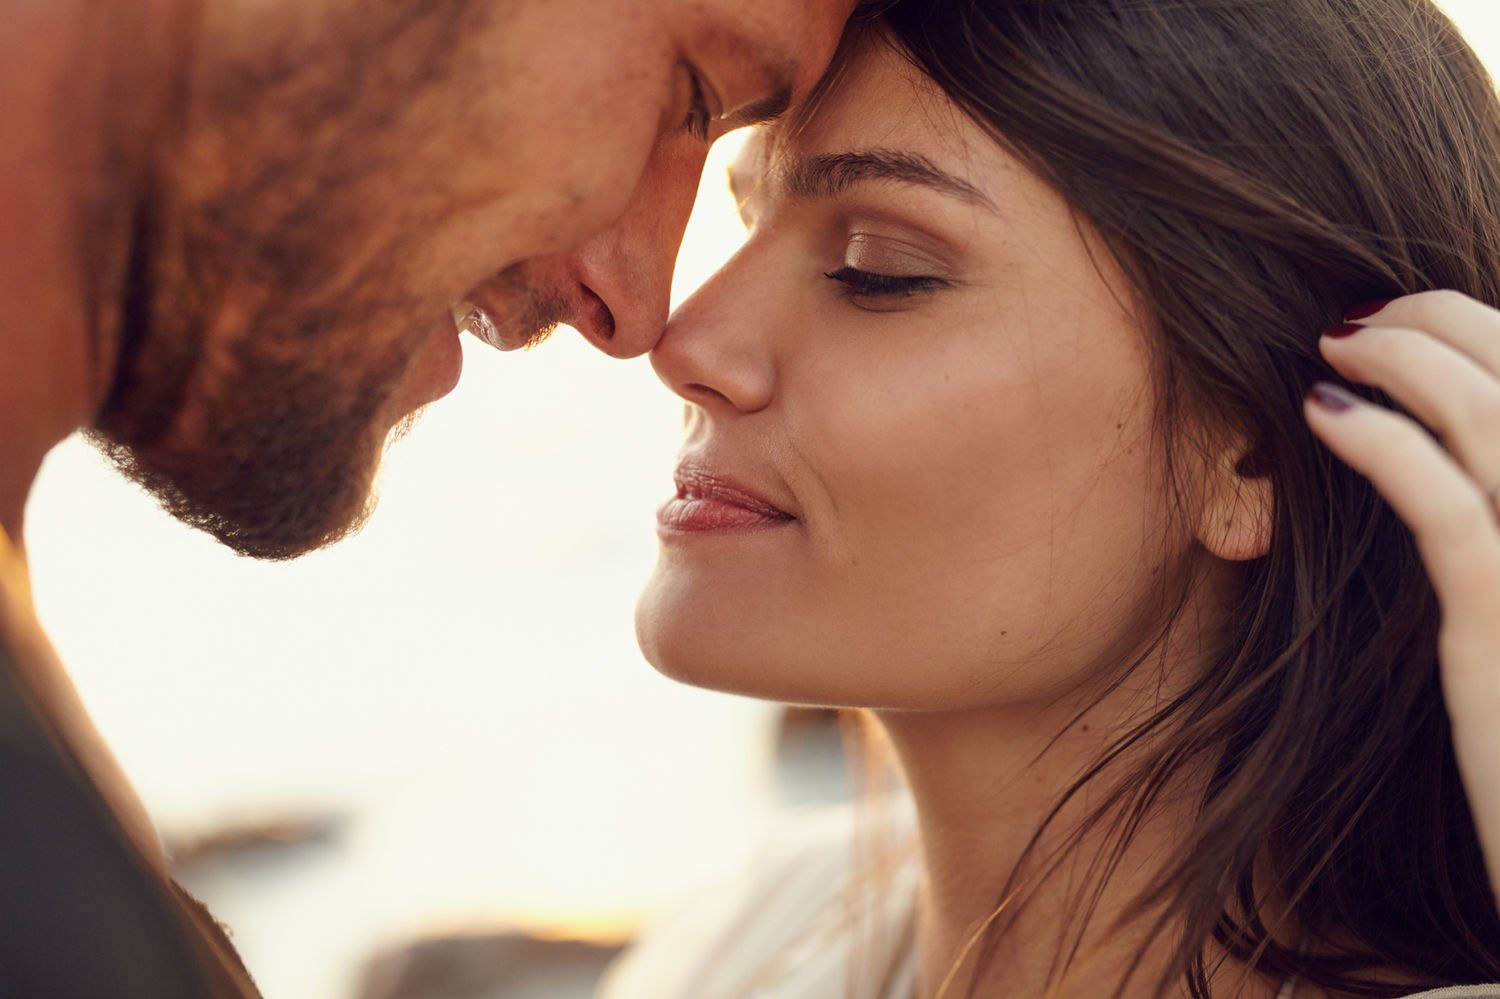 signs your man is in a mood to kiss you